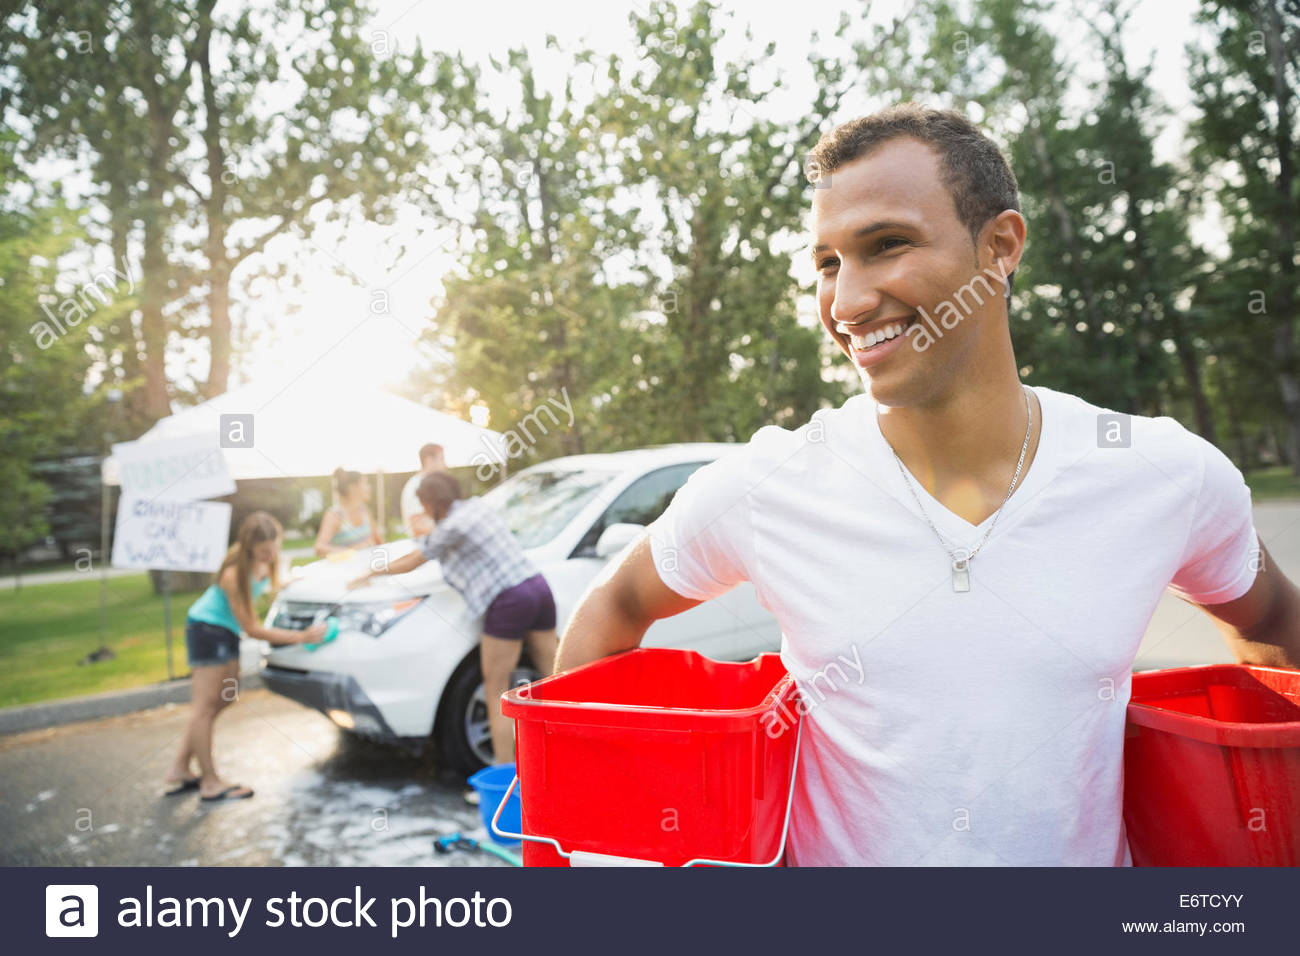 Portrait of man with buckets at car wash - Stock Image